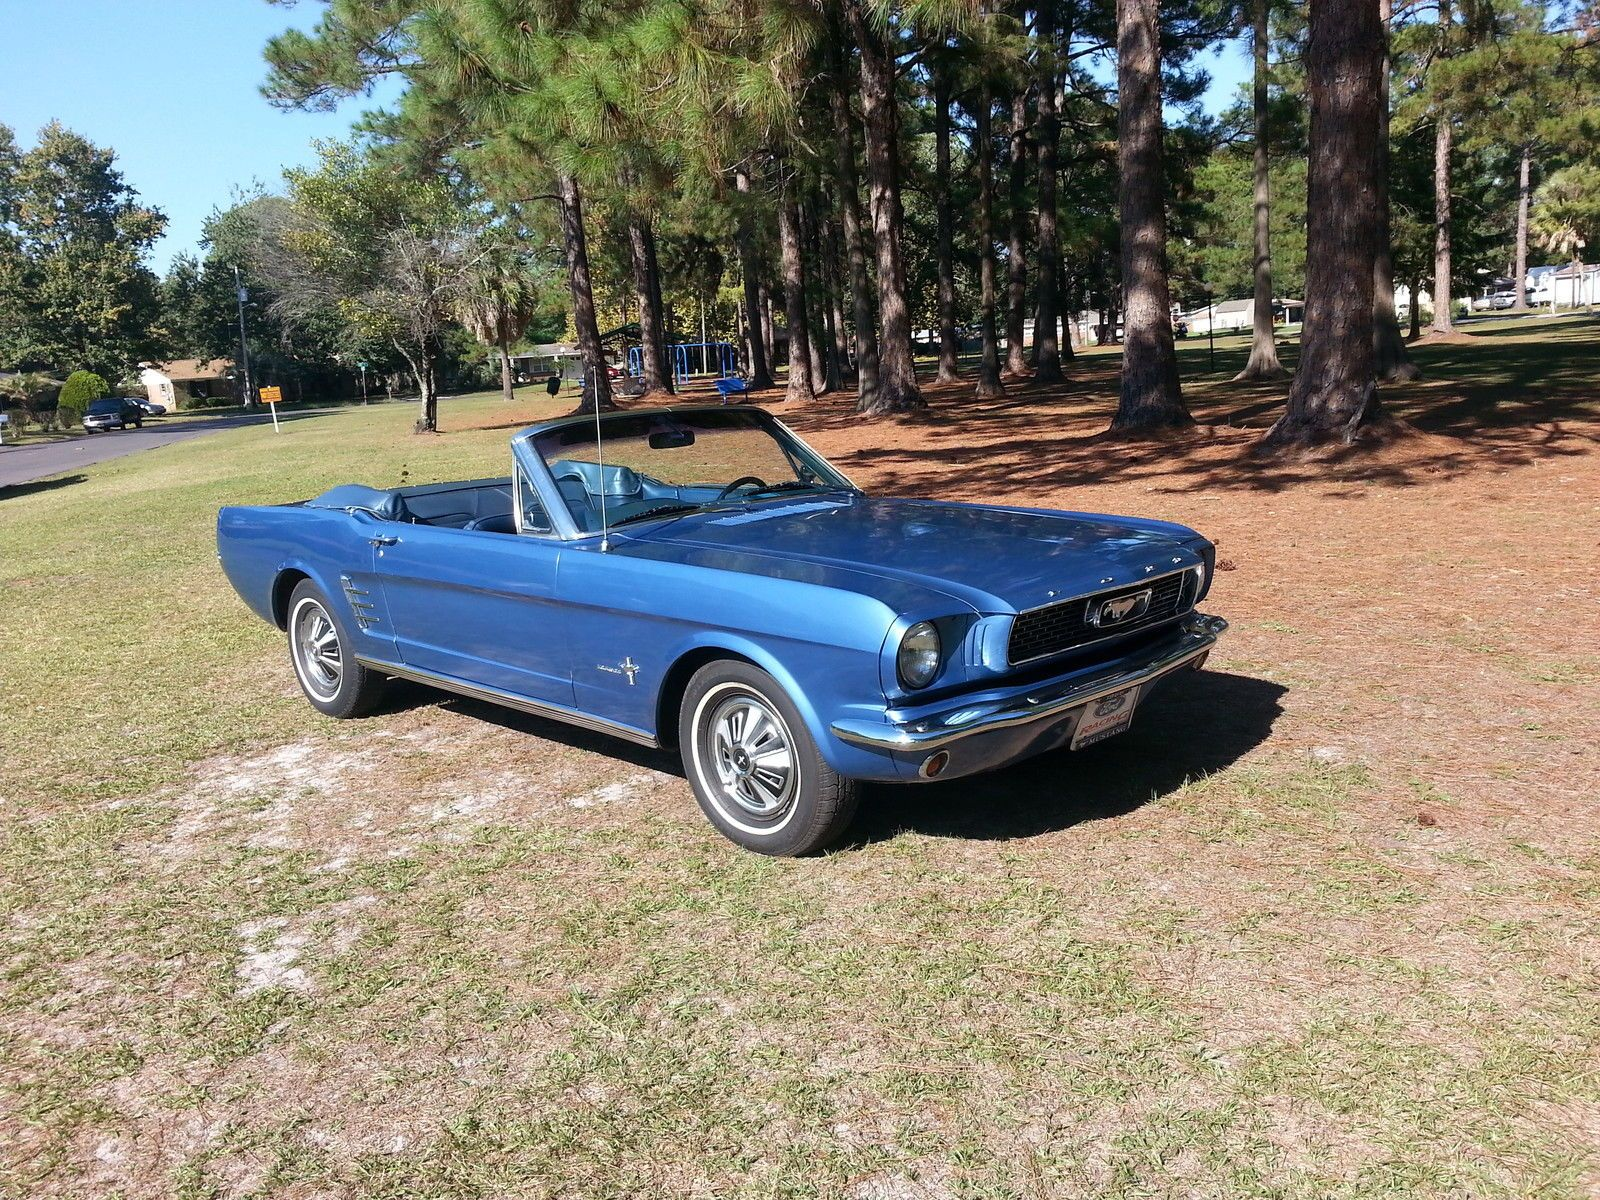 Ford Mustang Convertible eBay